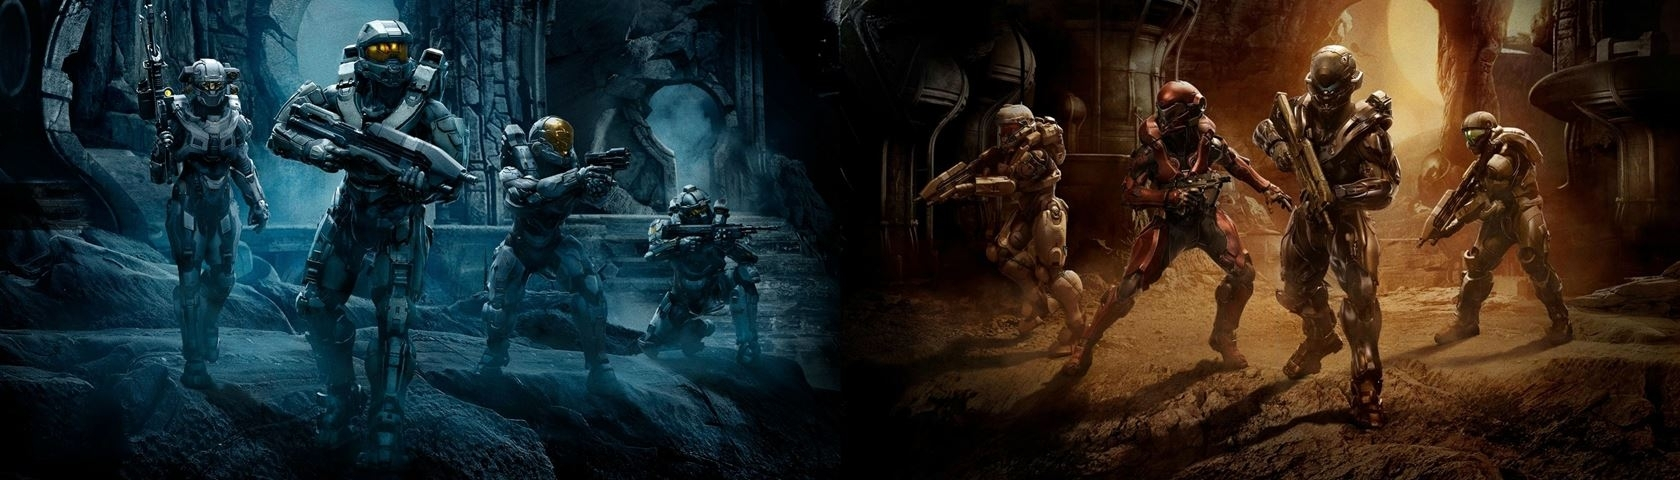 halo 5 guardians - dual screen • images • wallpaperfusionbinary